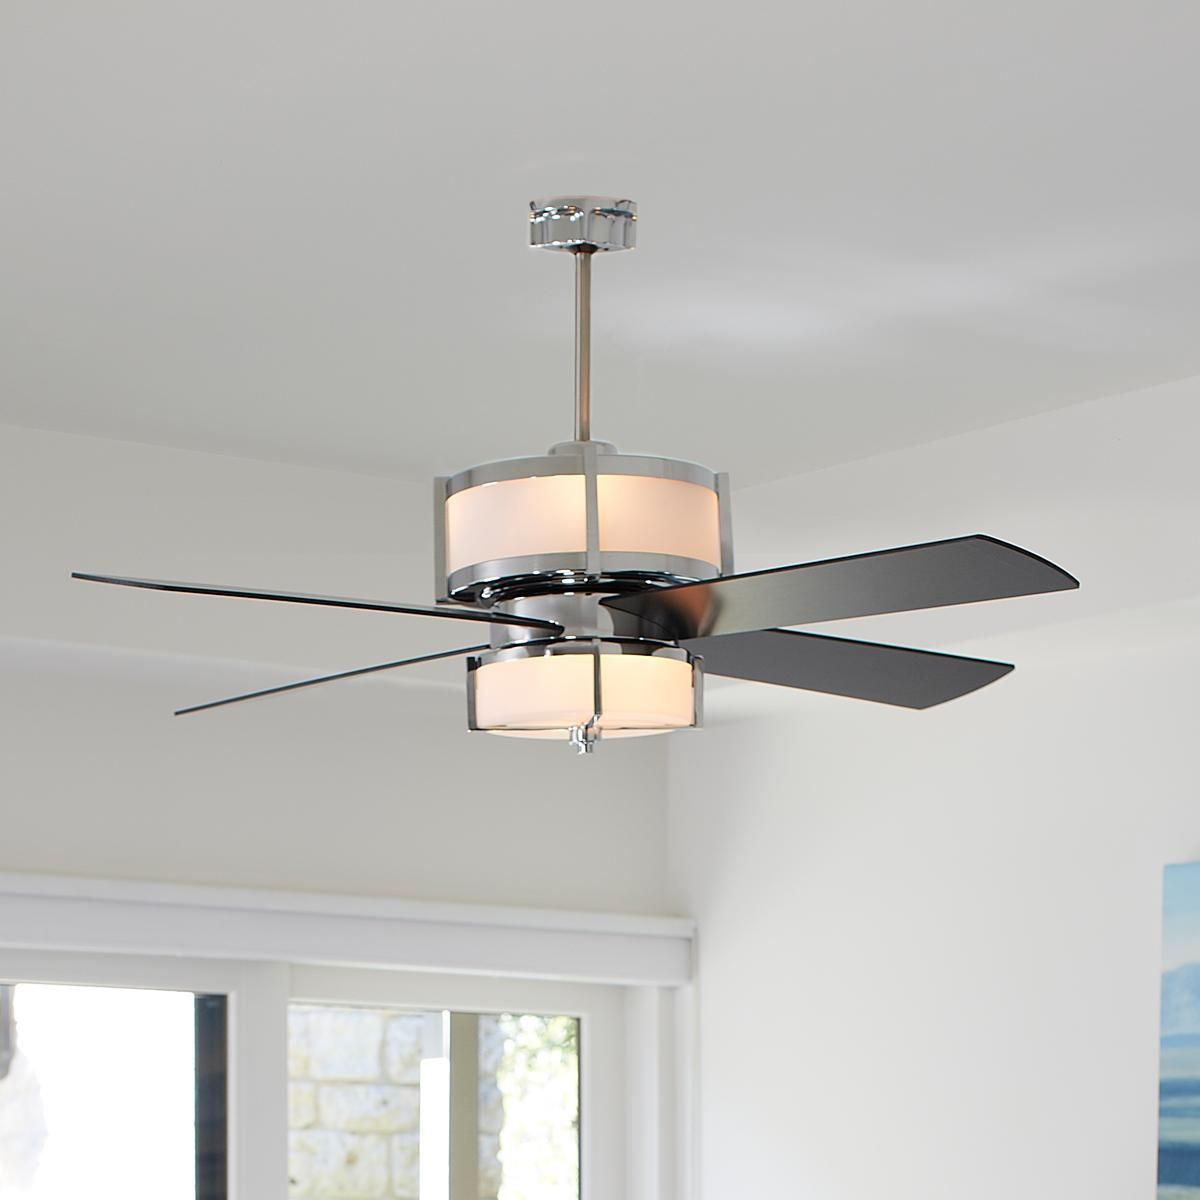 Ceiling Fan For Great Room Upscale Modern Ceiling Fan Modern Ceiling And Ceiling Fan